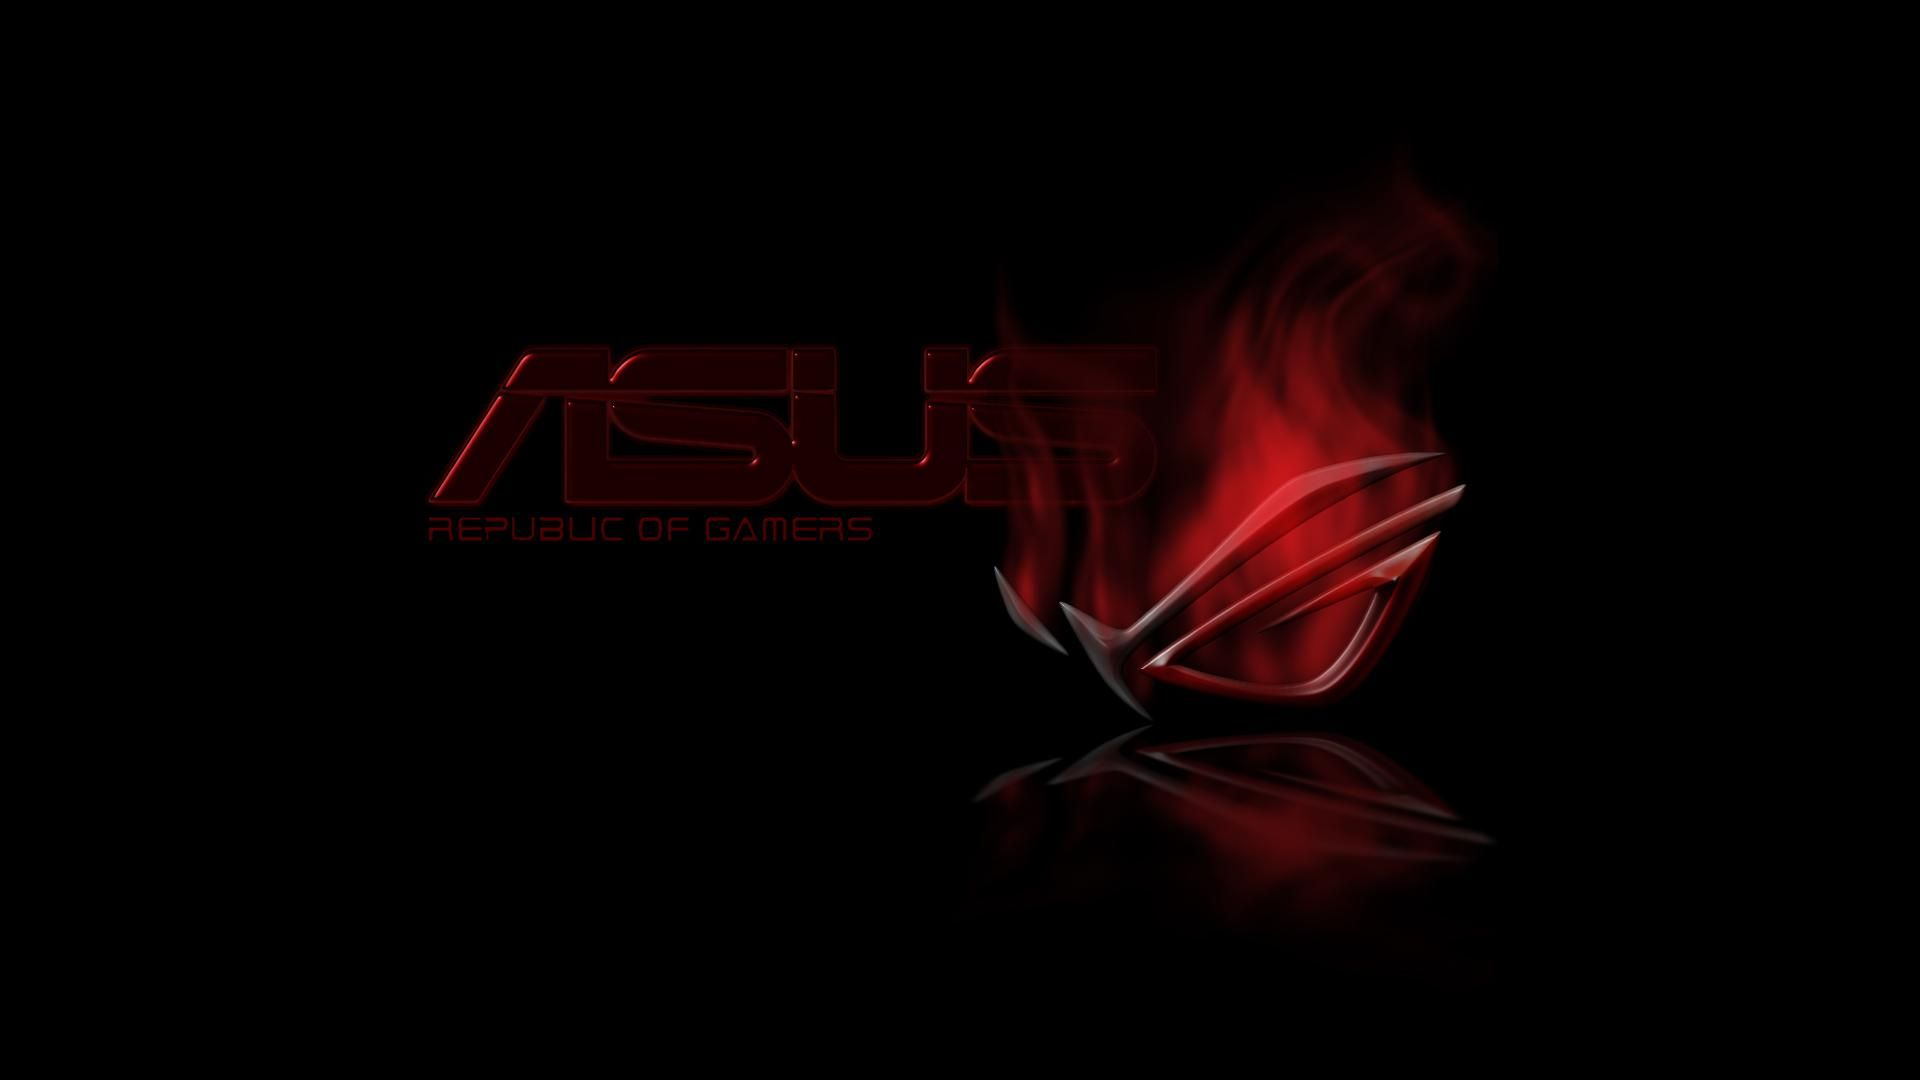 Red Asus Wallpaper: Red And Black Asus RoG Republic Of Gamers Wallpaper